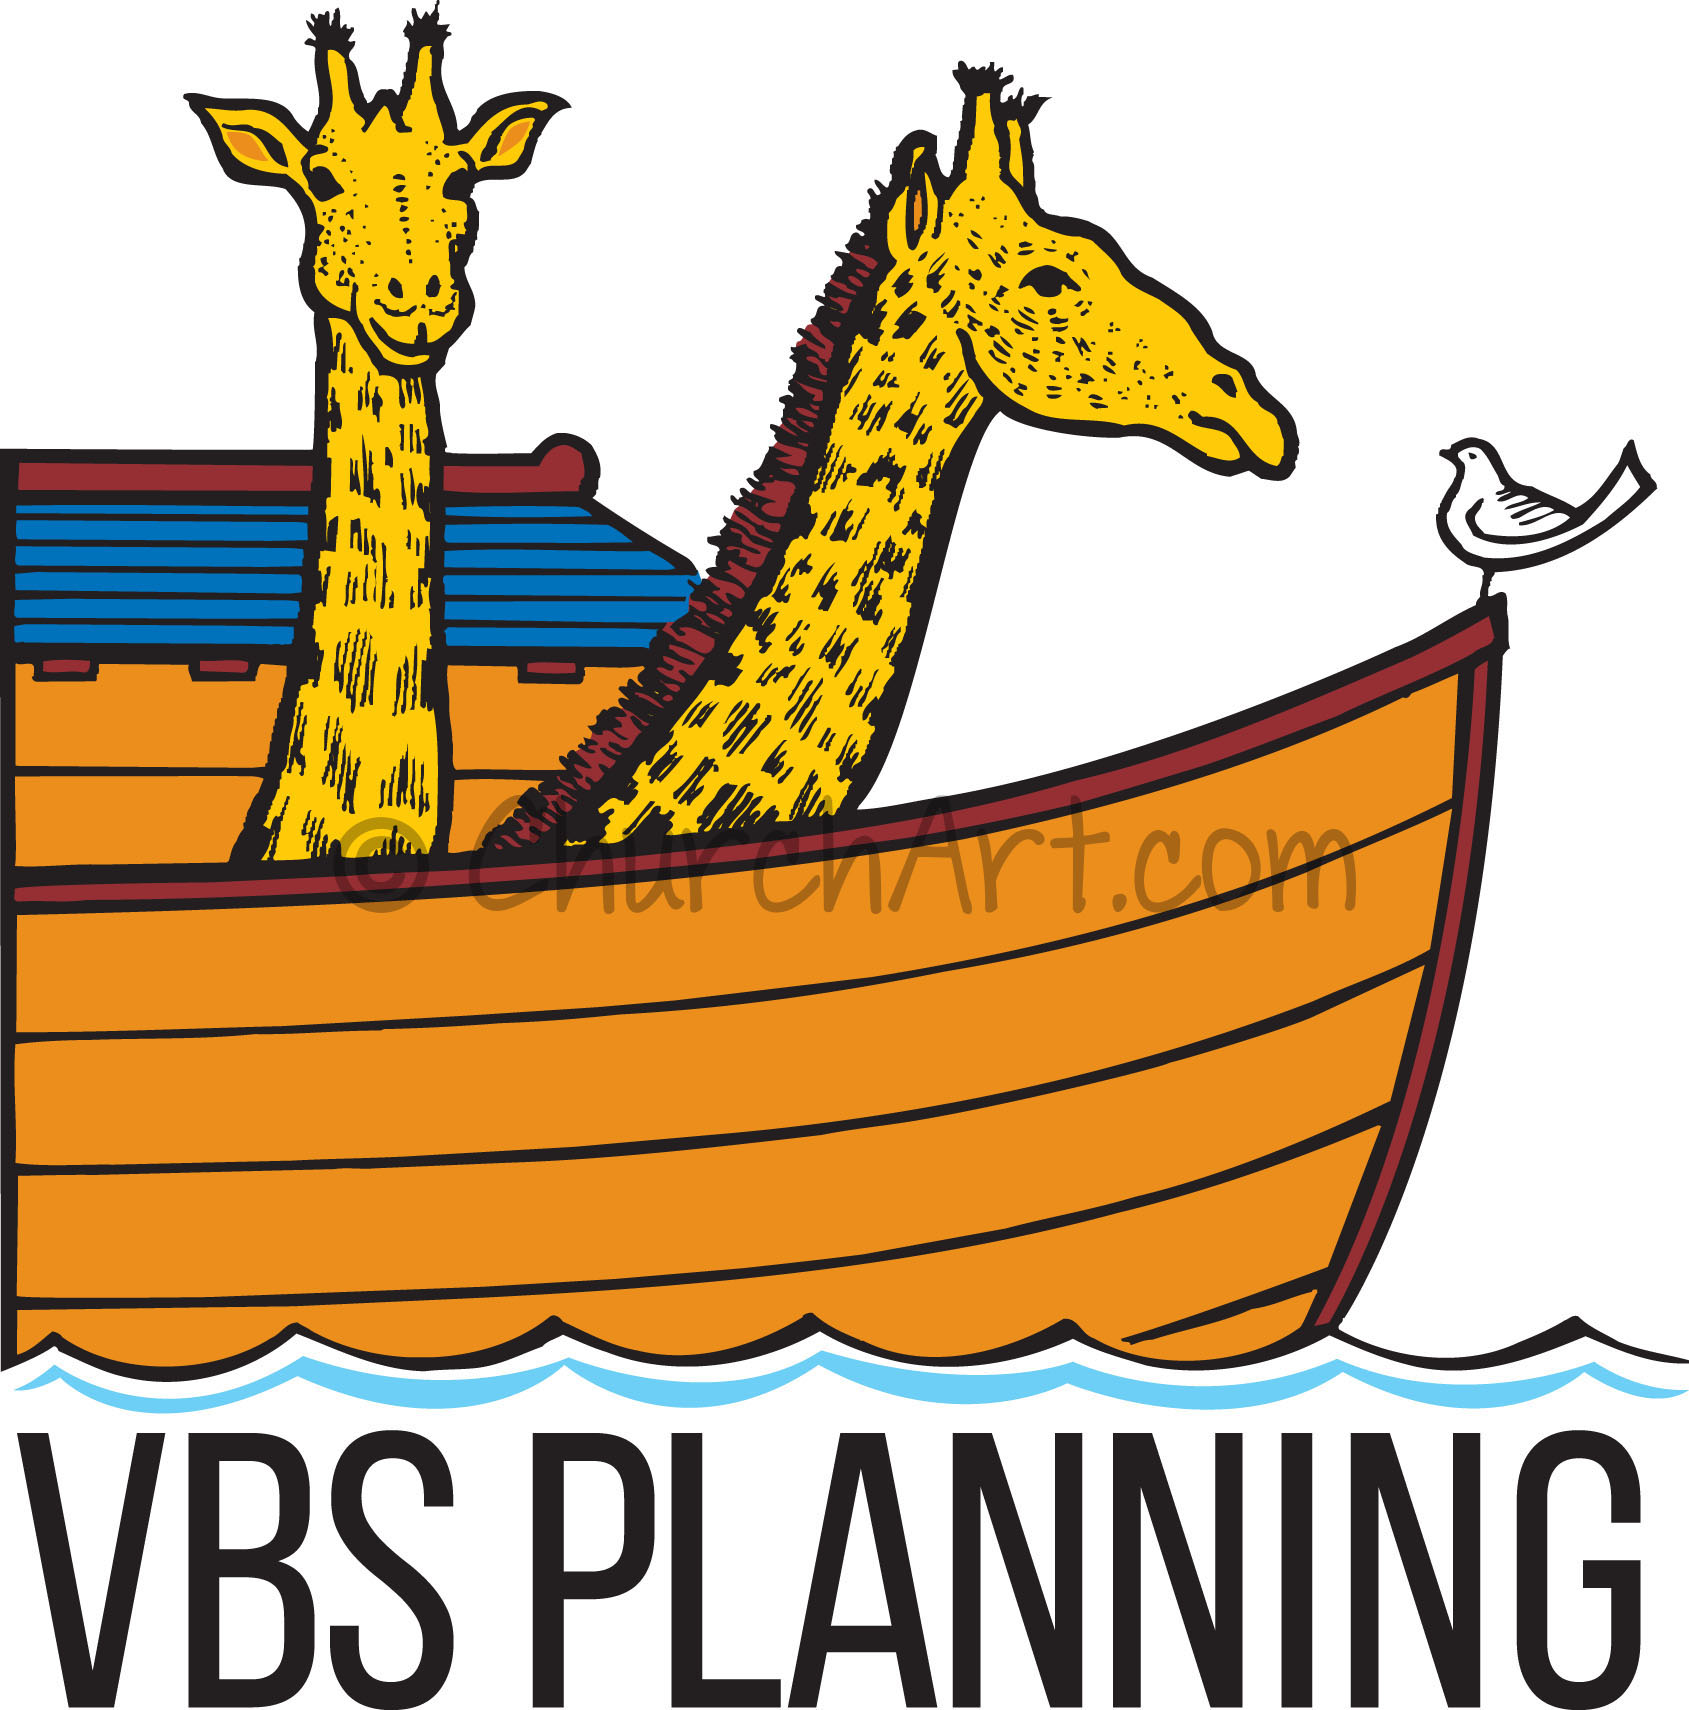 Vacation Bible School Clip-Art with image of ark and animals with VBS planning caption